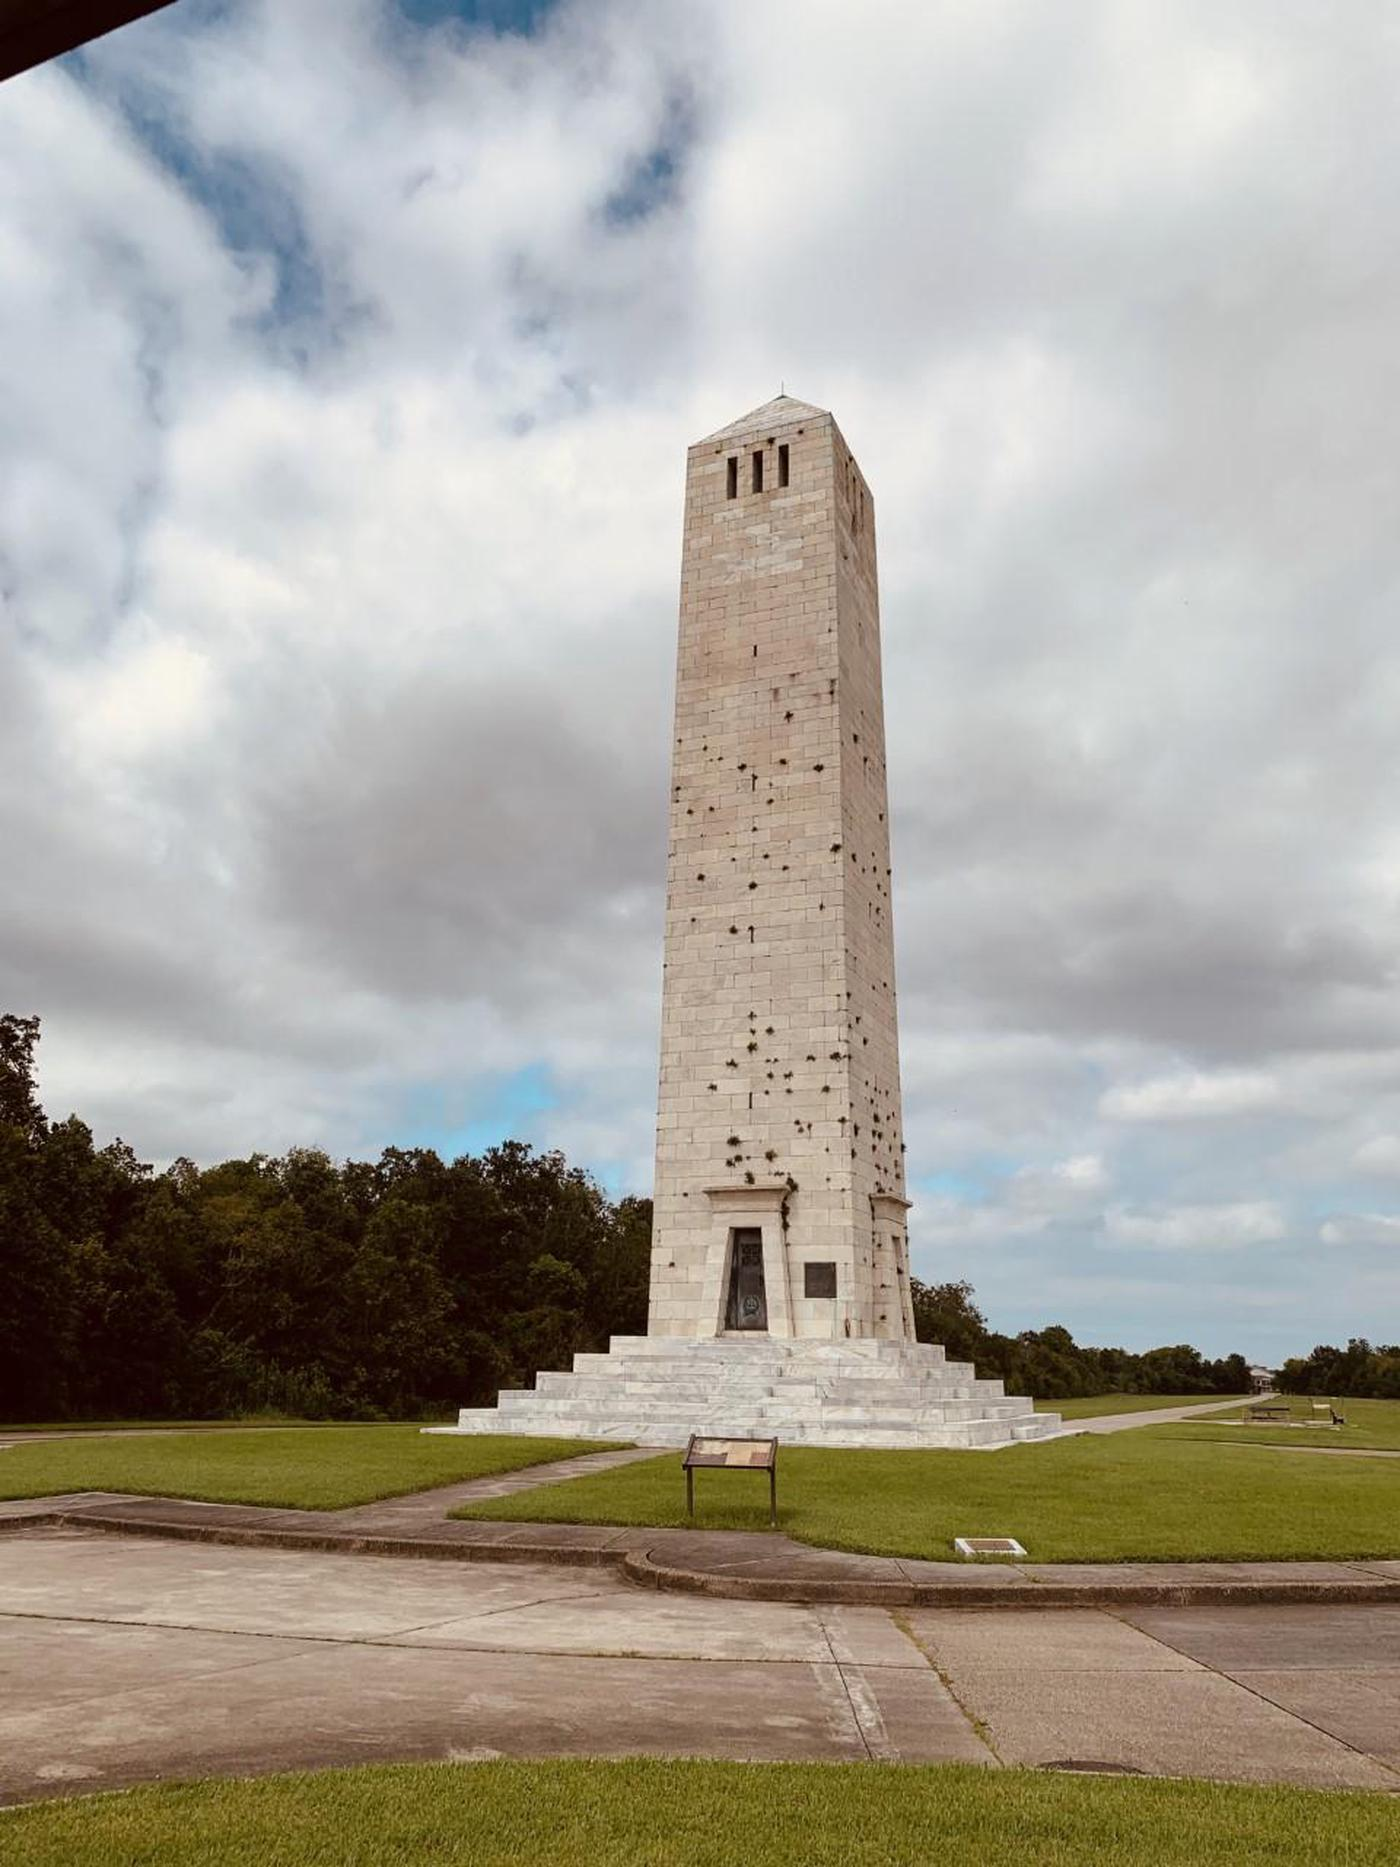 Chalmette MonumentThe Chalmette Monument stands as a focal point commemorating the 1815 victory Battle of New Orleans